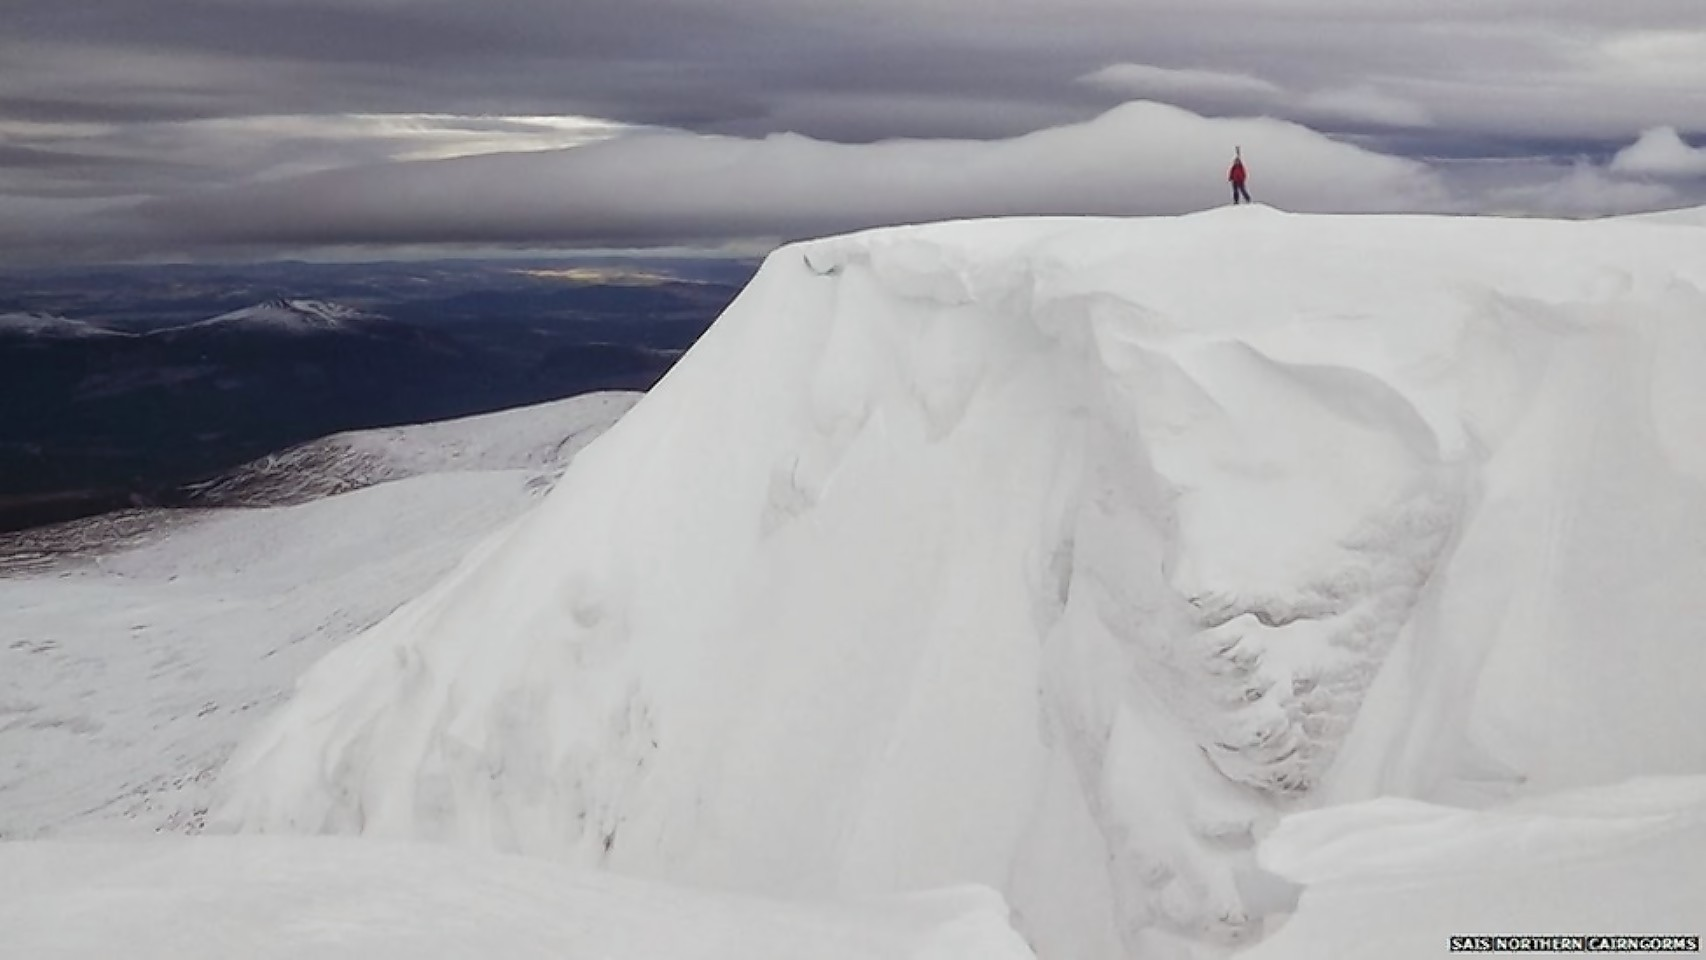 Mountaineers have been warned of hazardous conditions in the Scottish mountains